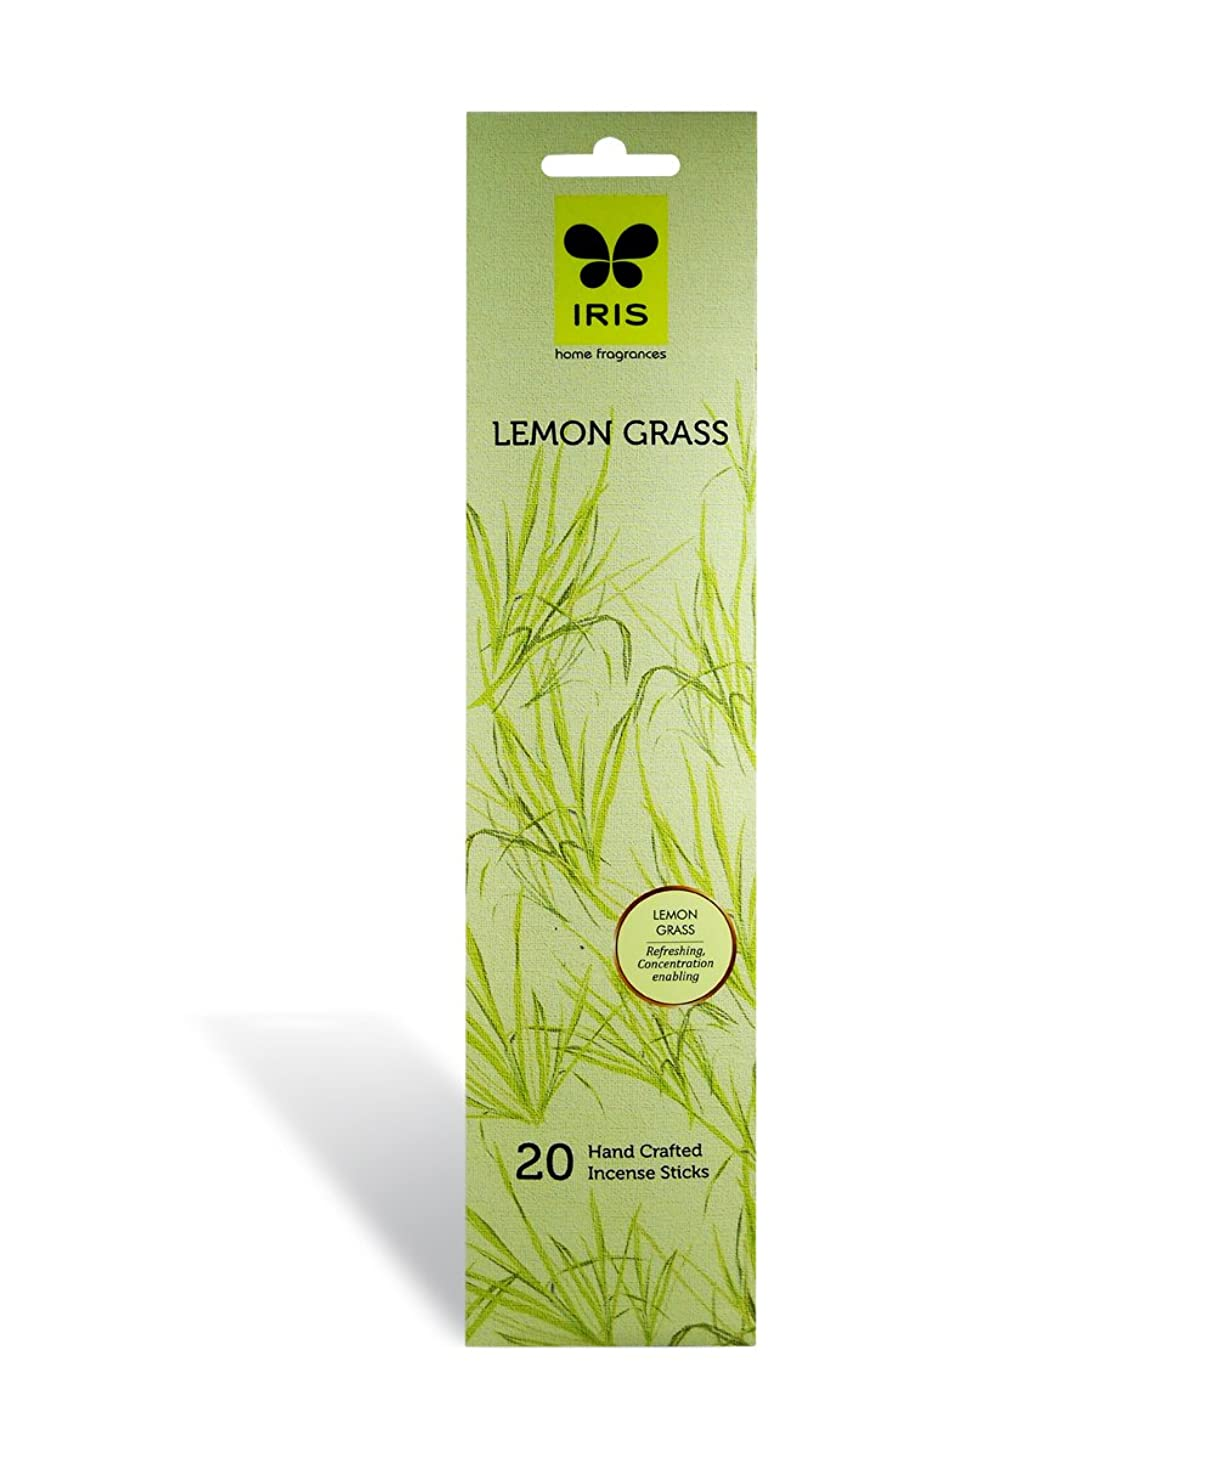 IRIS Signature Lemon Grass Fragrance Incense Sticks